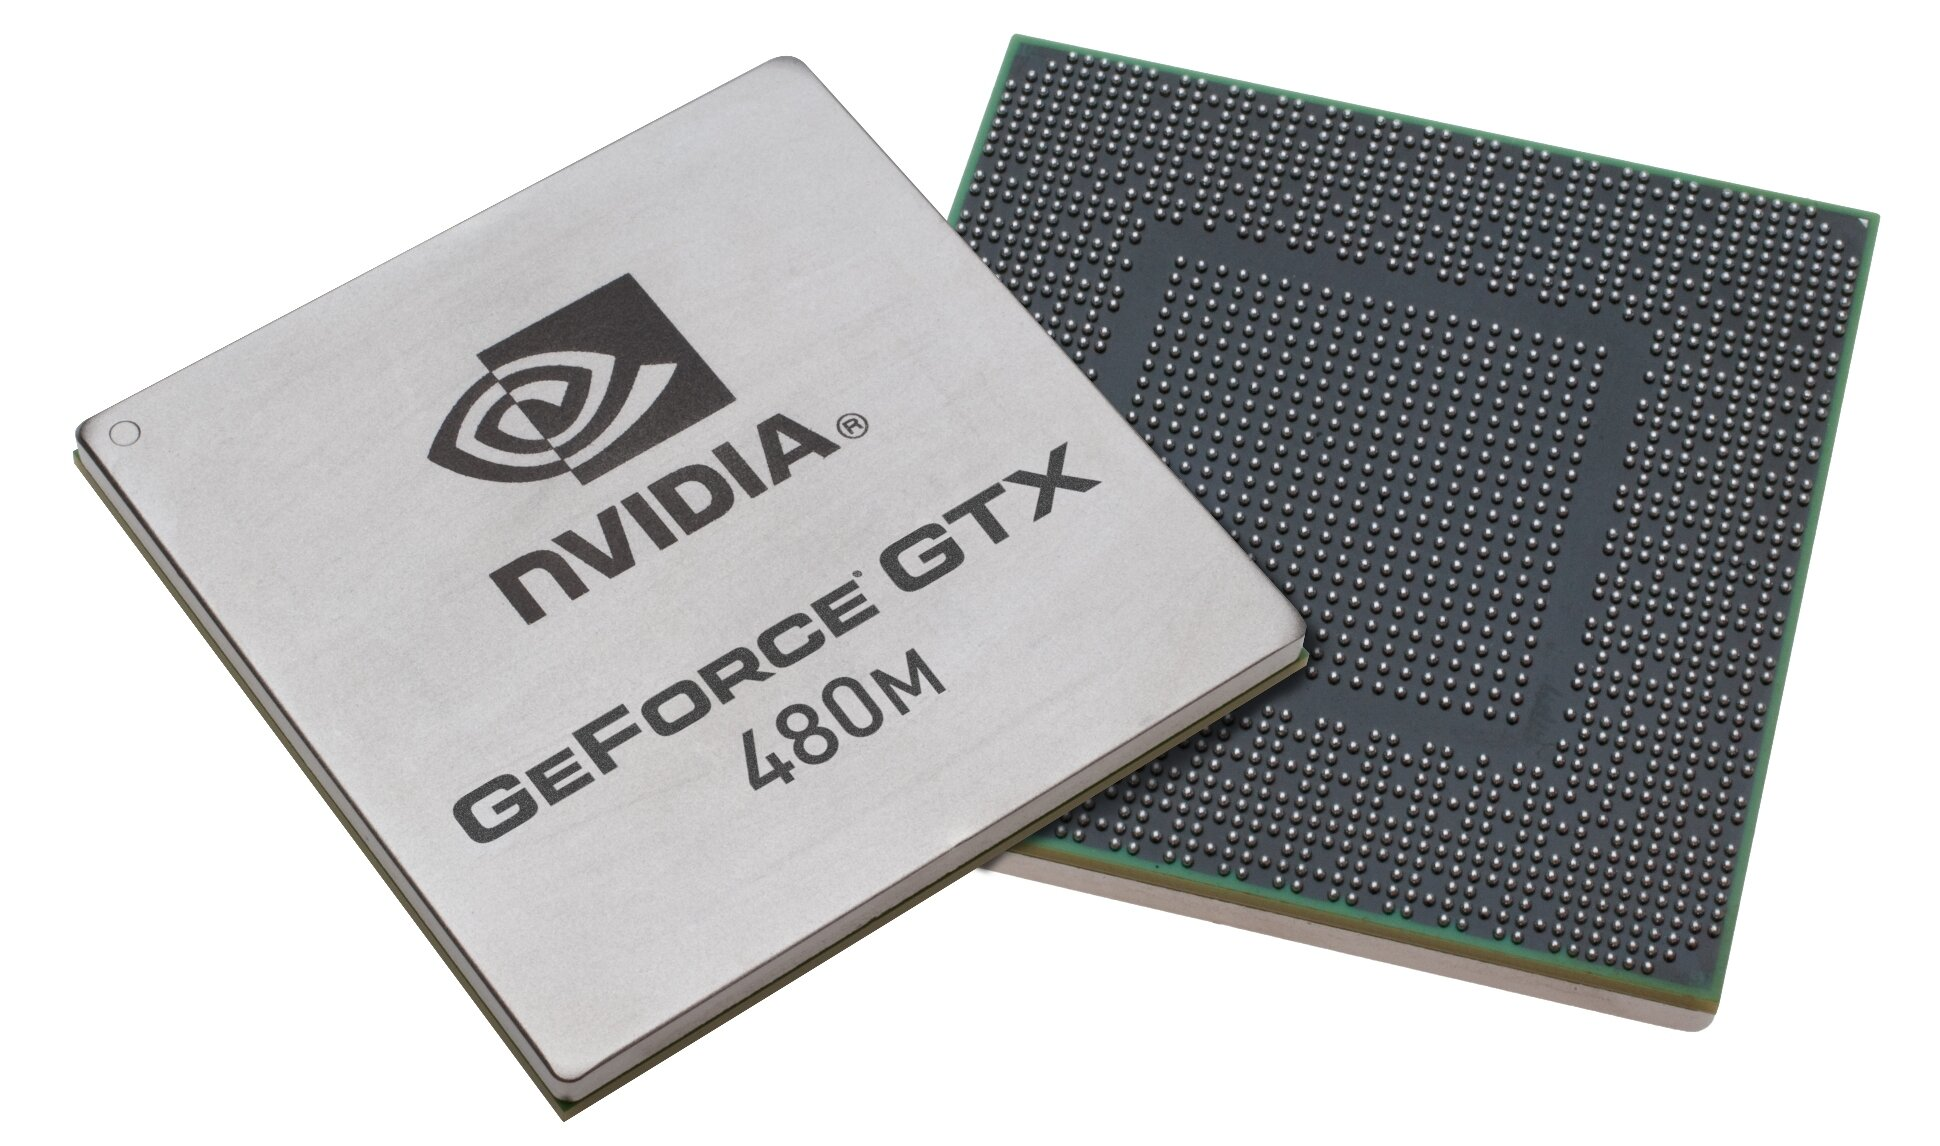 GeForce GTX 480M